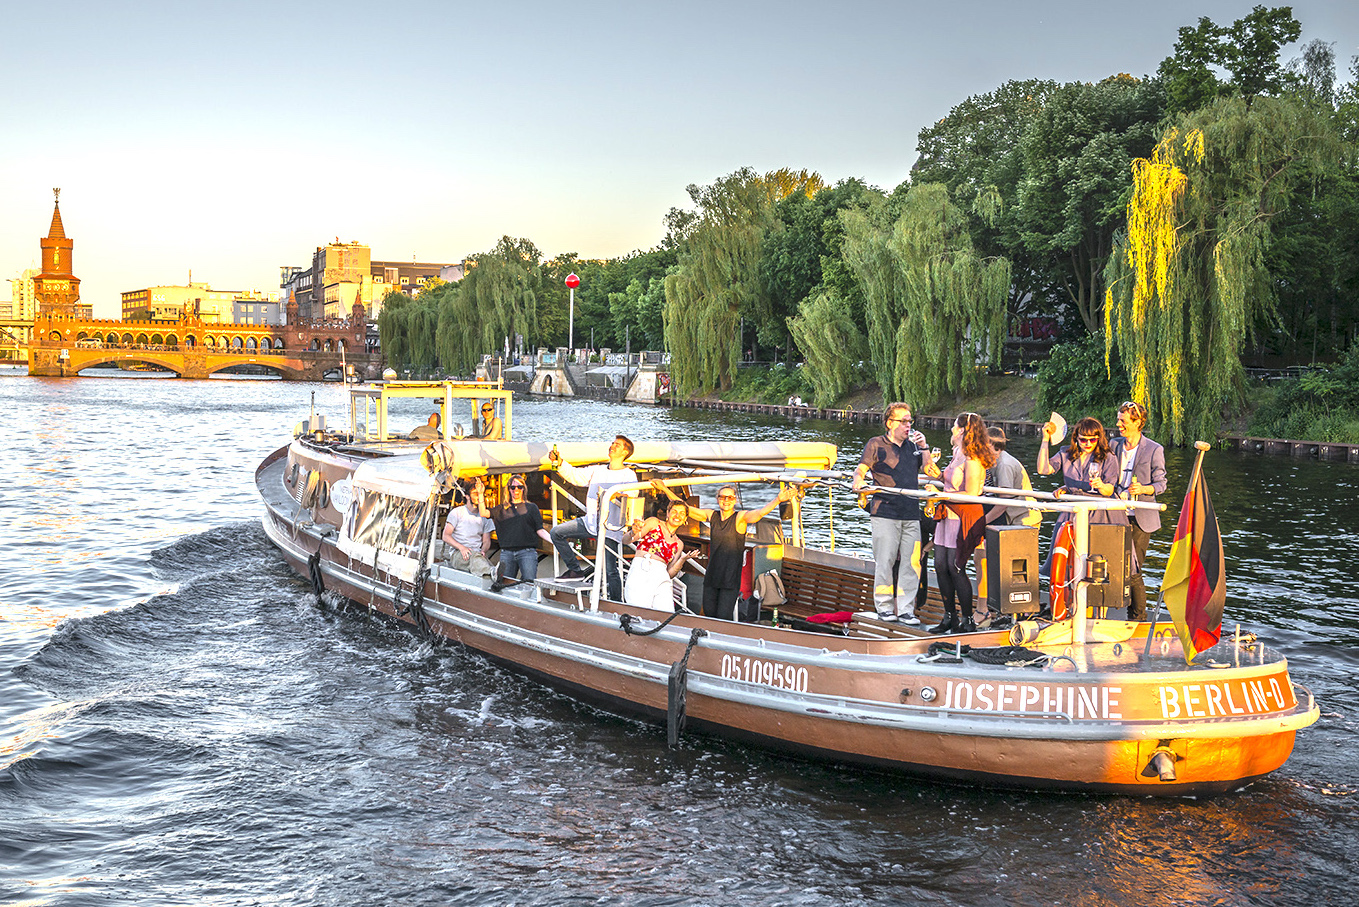 Josephine |  Boat ride with a cabrio barge